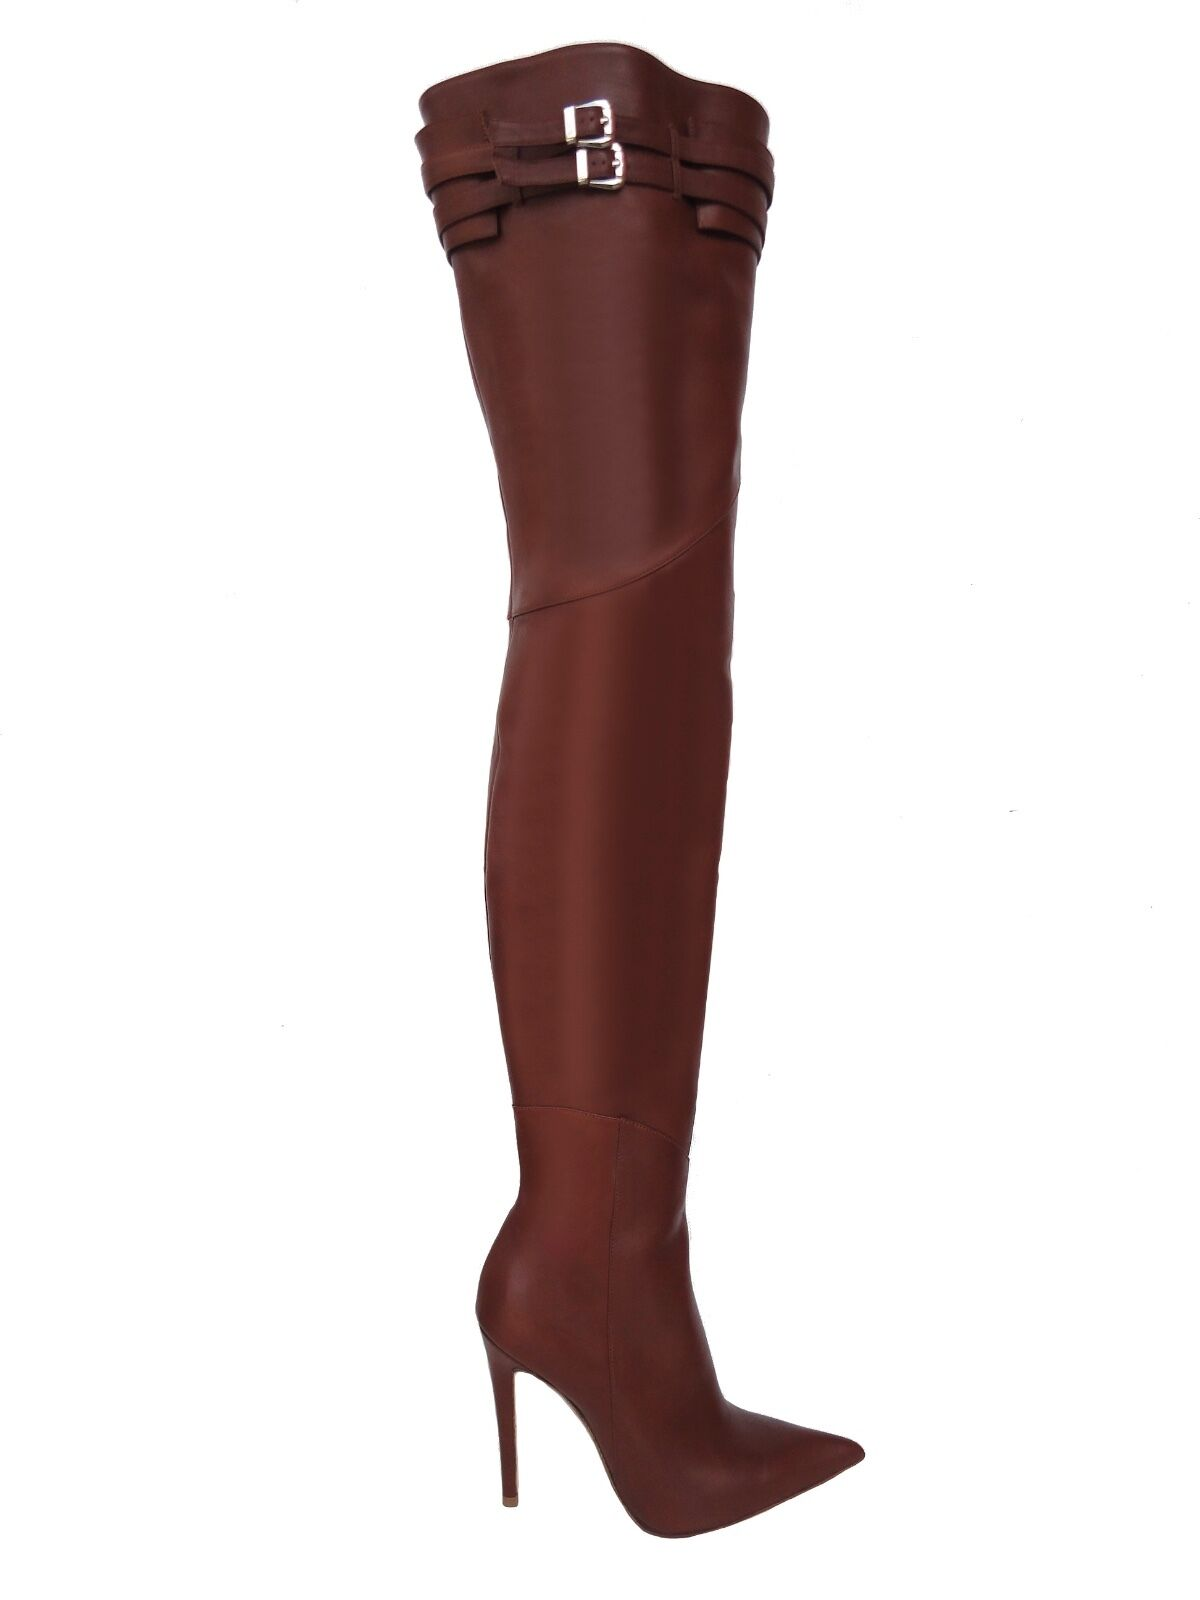 CQ COUTURE CUSTOM ITALY OVERKNEE BOOTS STIEFEL BOOTS